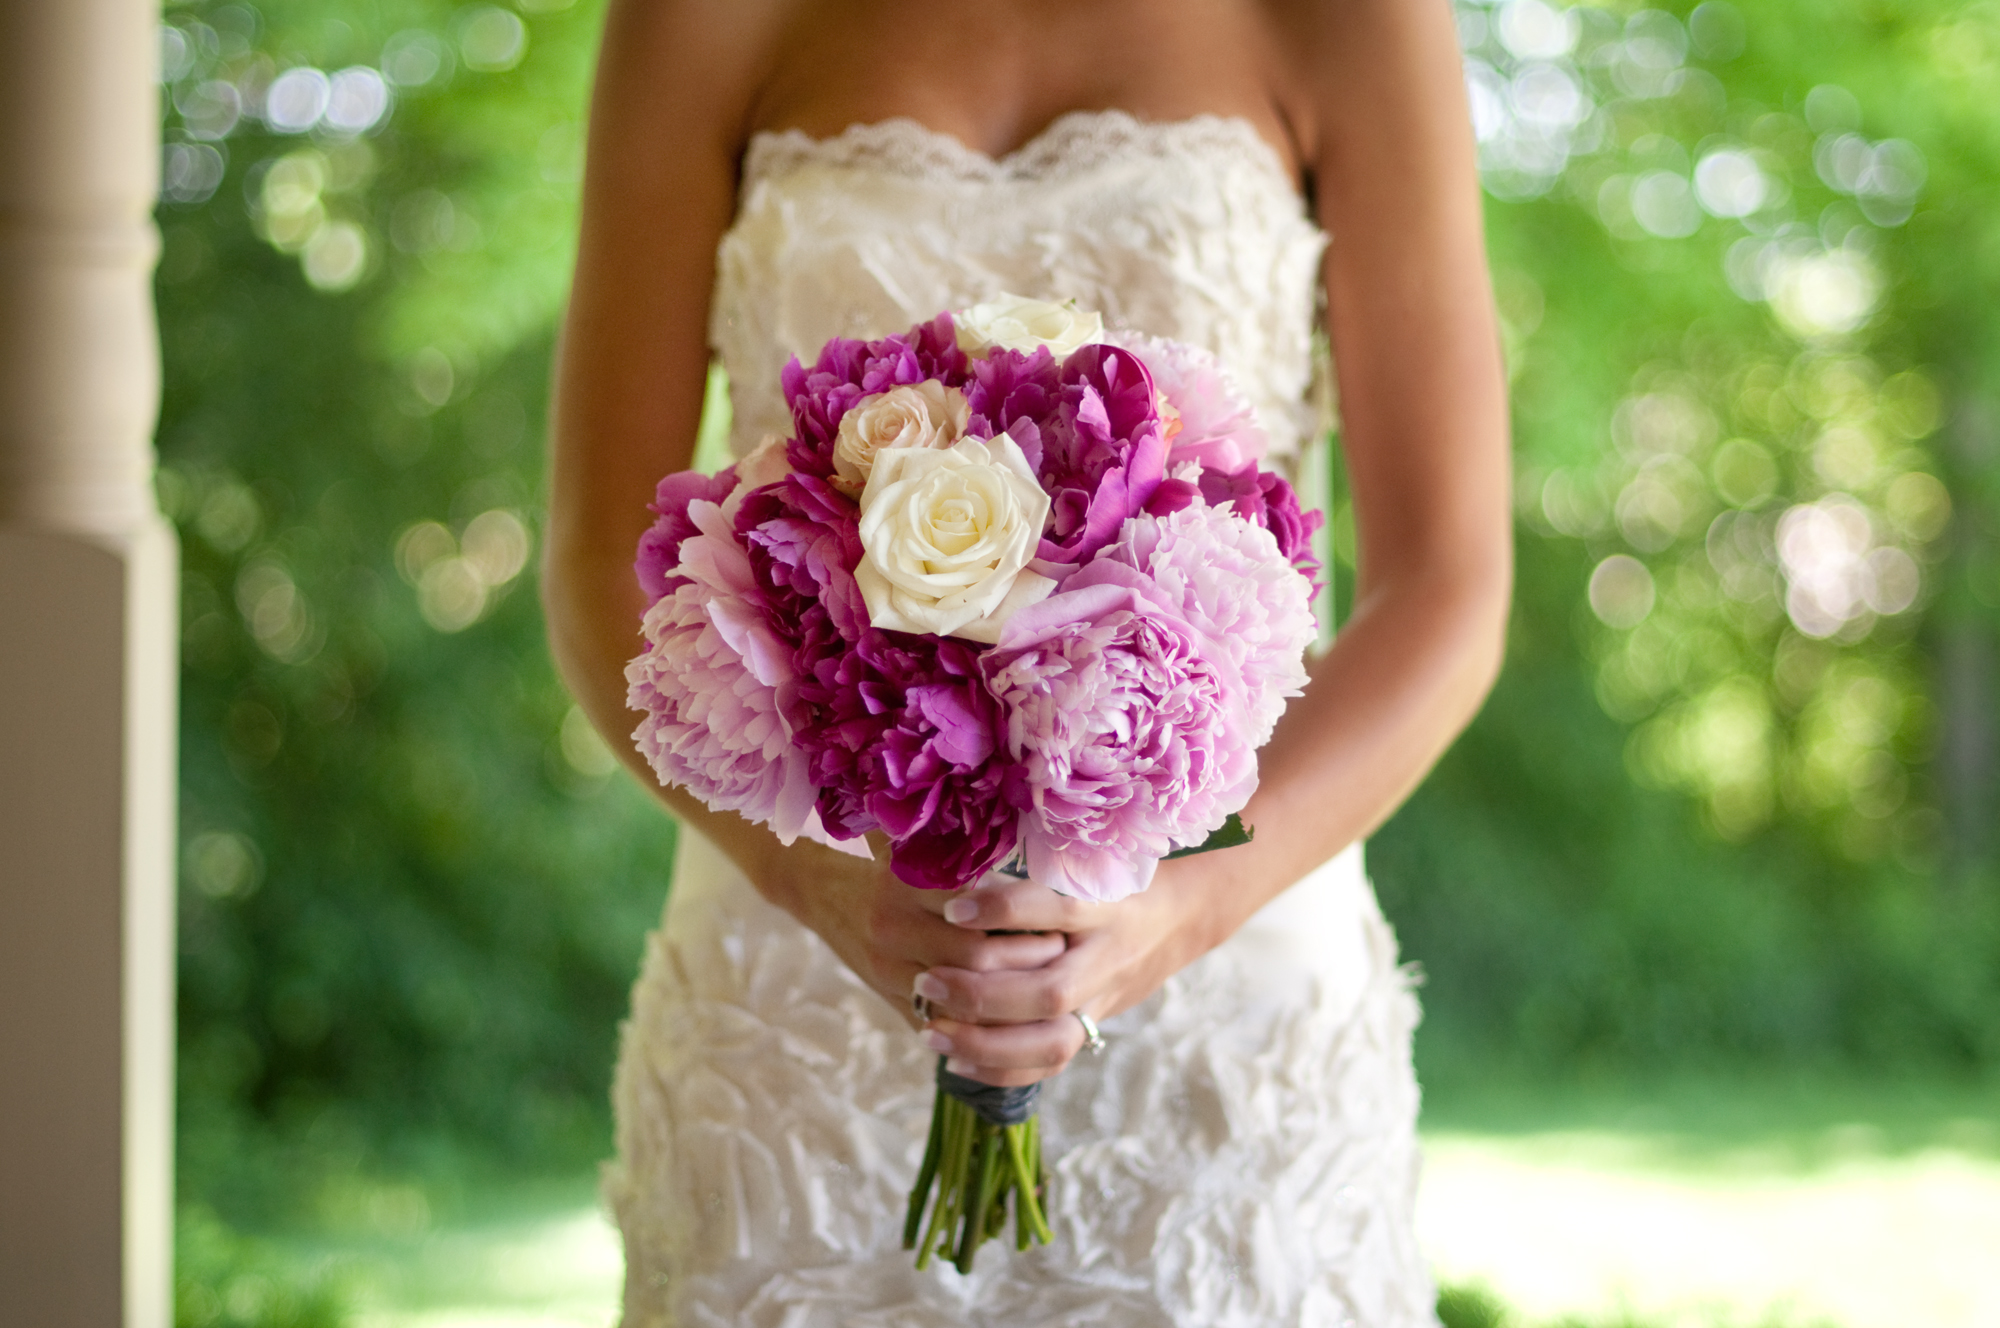 You May Not Want Peonies in Your Wedding Bouquet